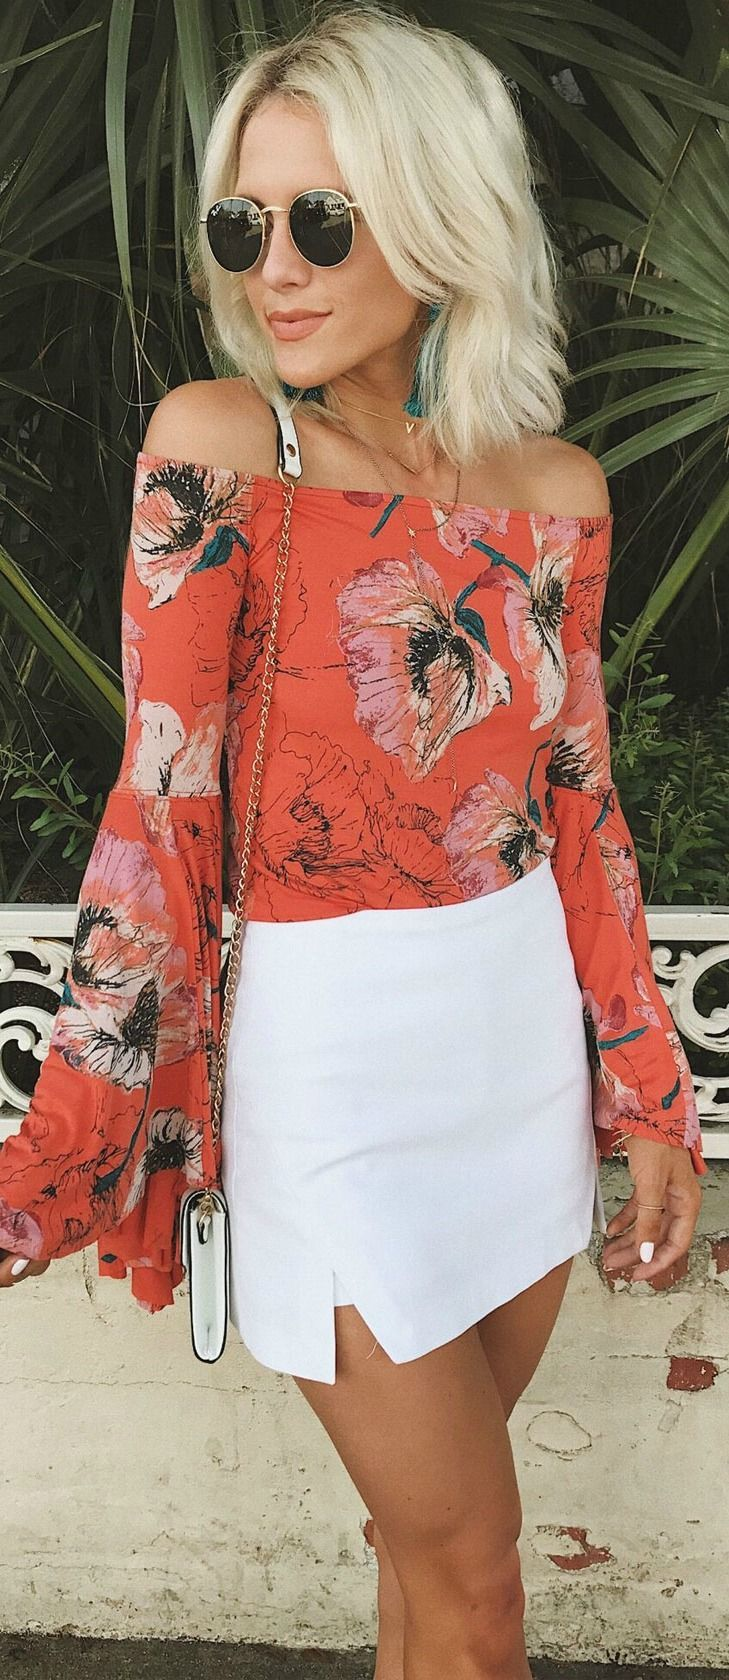 Free People Birds of Paradise Coral Orange Floral Print Top is part of Party Clothes Casual - Be the party in the Free People Birds of Paradise Coral Orange Floral Print Top! Soft and stretchy jersey knit, in a coral orange, pink, blue, and black floral print, shapes an offtheshoulder neckline, and long, dramatic bell sleeves  Fitted bodice  As Seen On Kemper of @joandkemp!